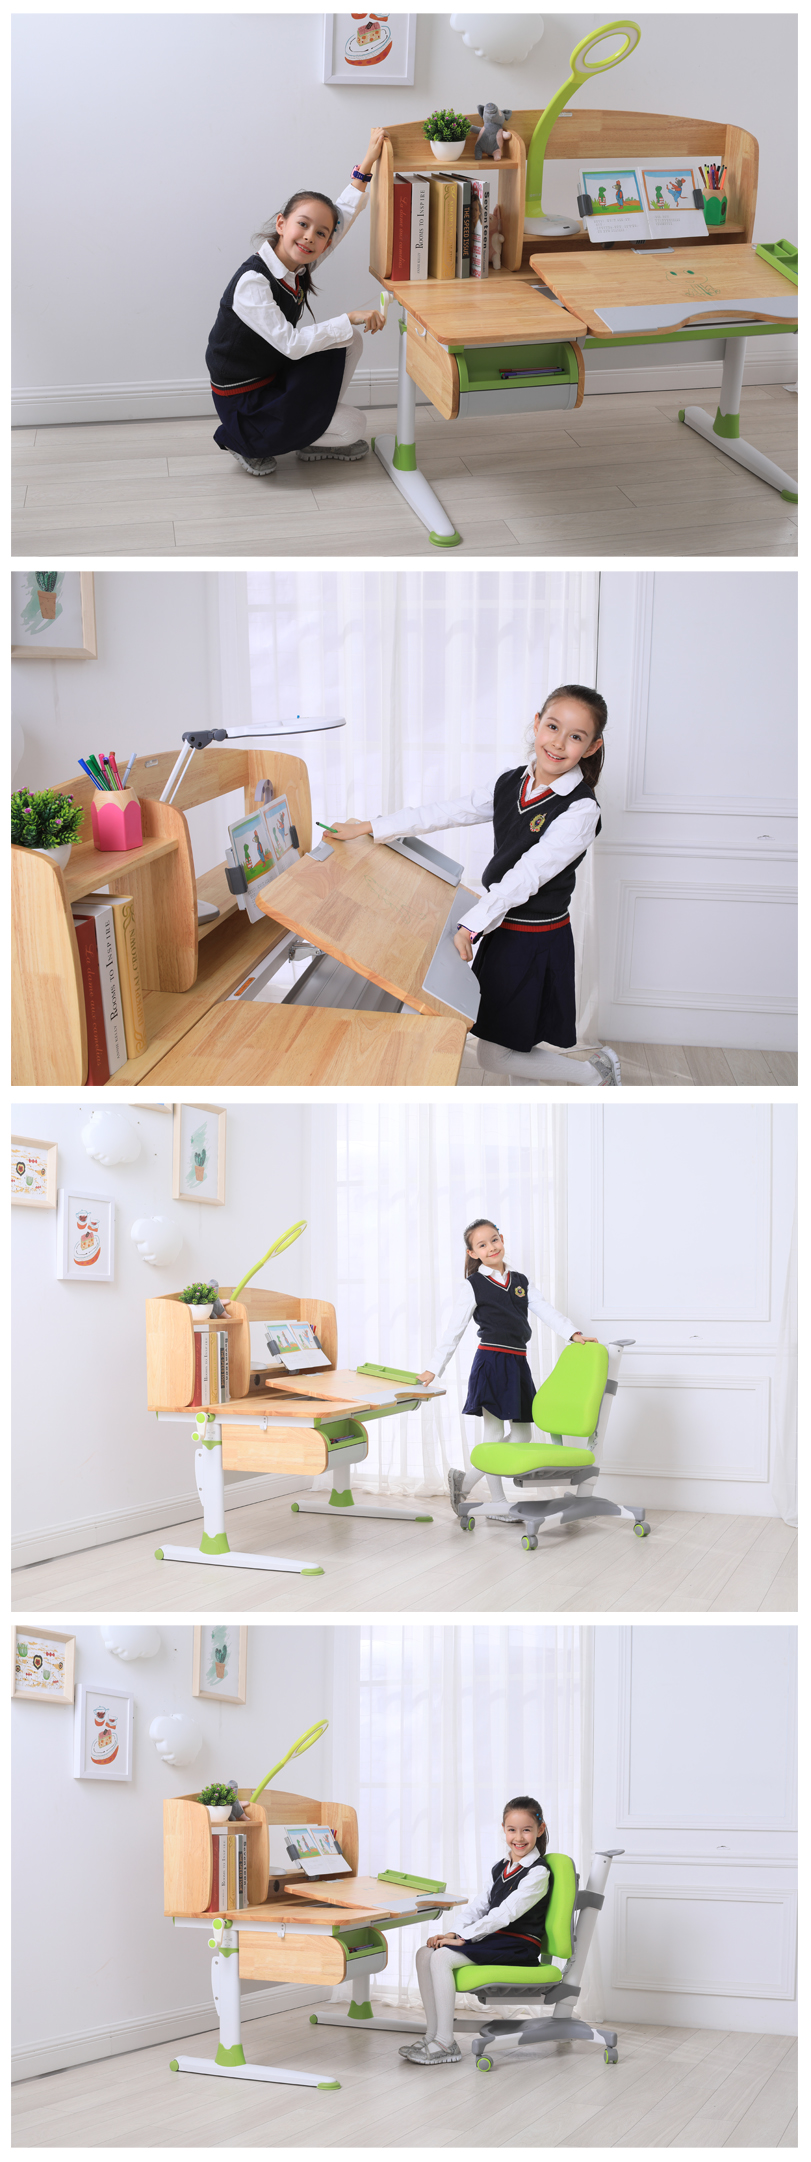 school kids study desk adjustable height 120cm